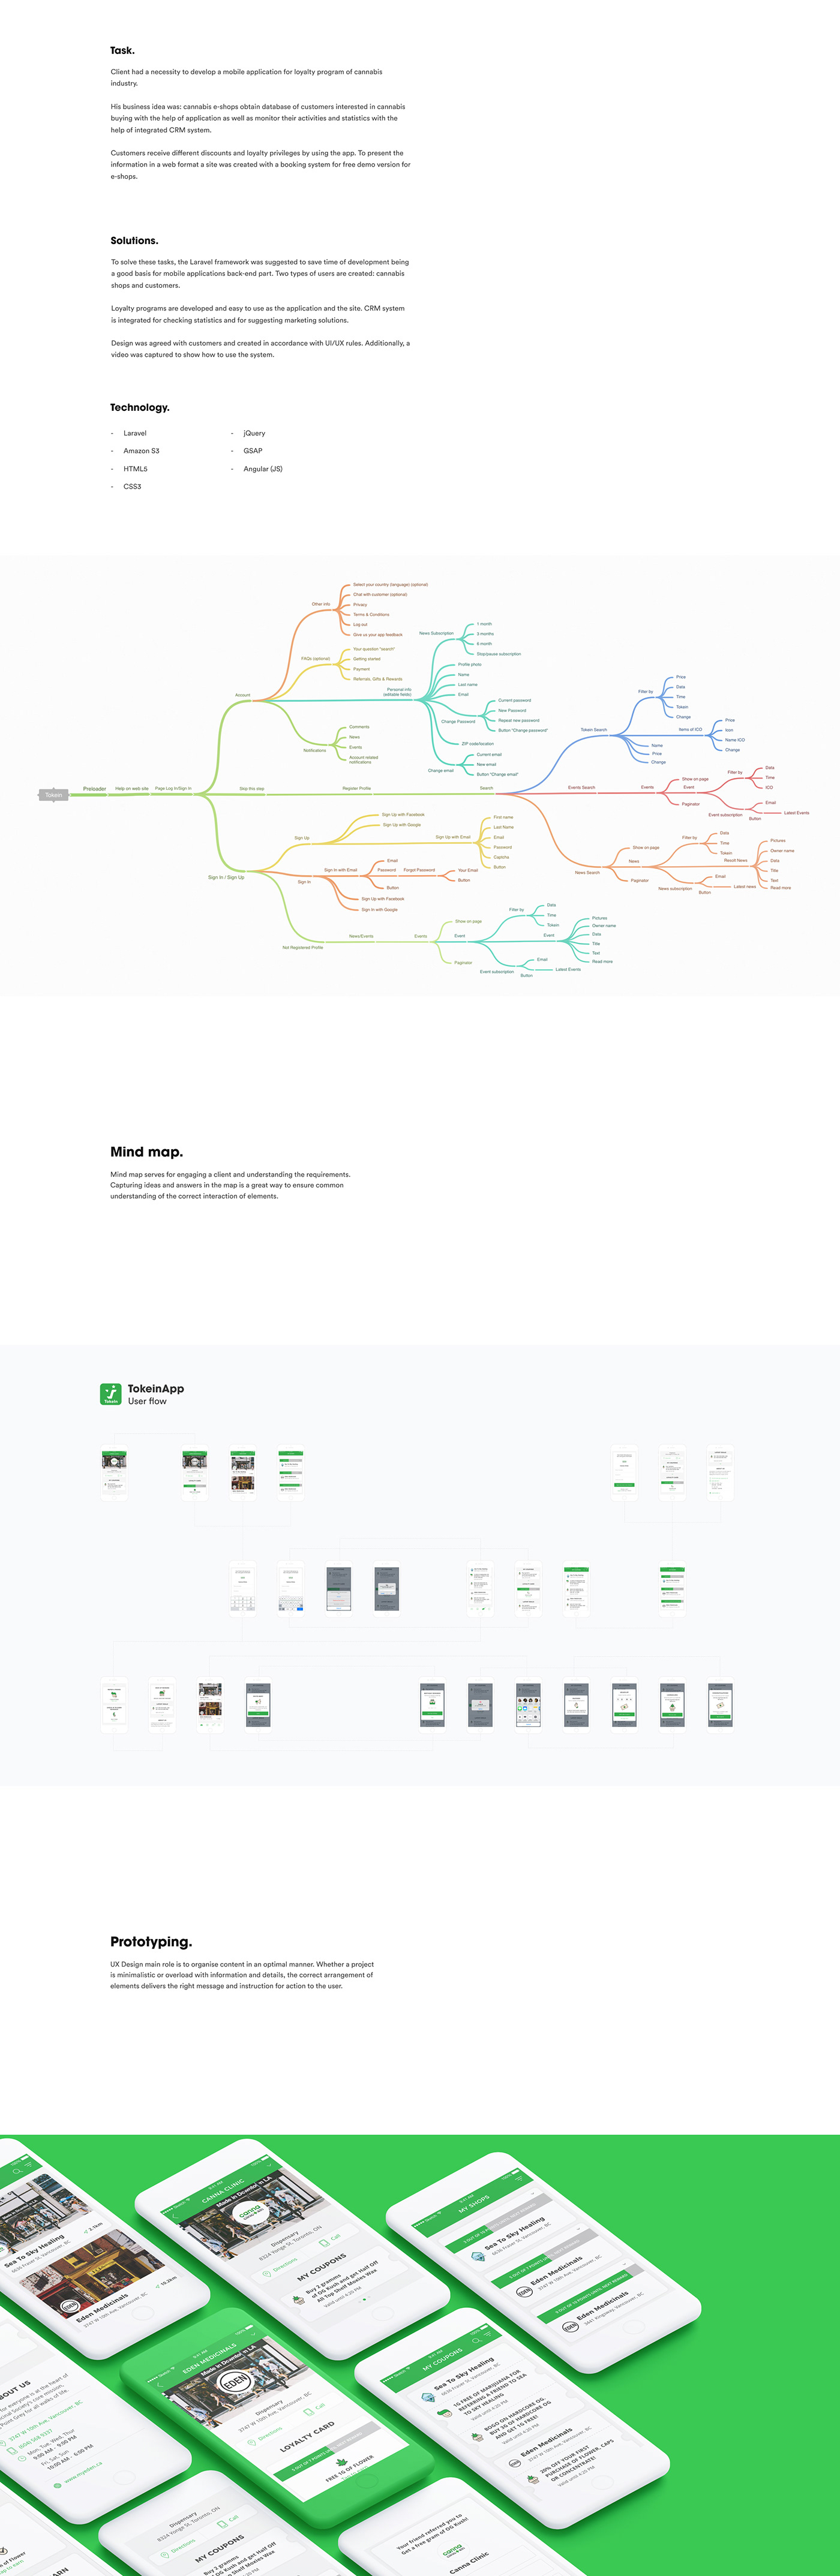 User Experience Design user interface design Web Design  Mobile app wireframing user flow Prototyping design thinking design research adaptive design